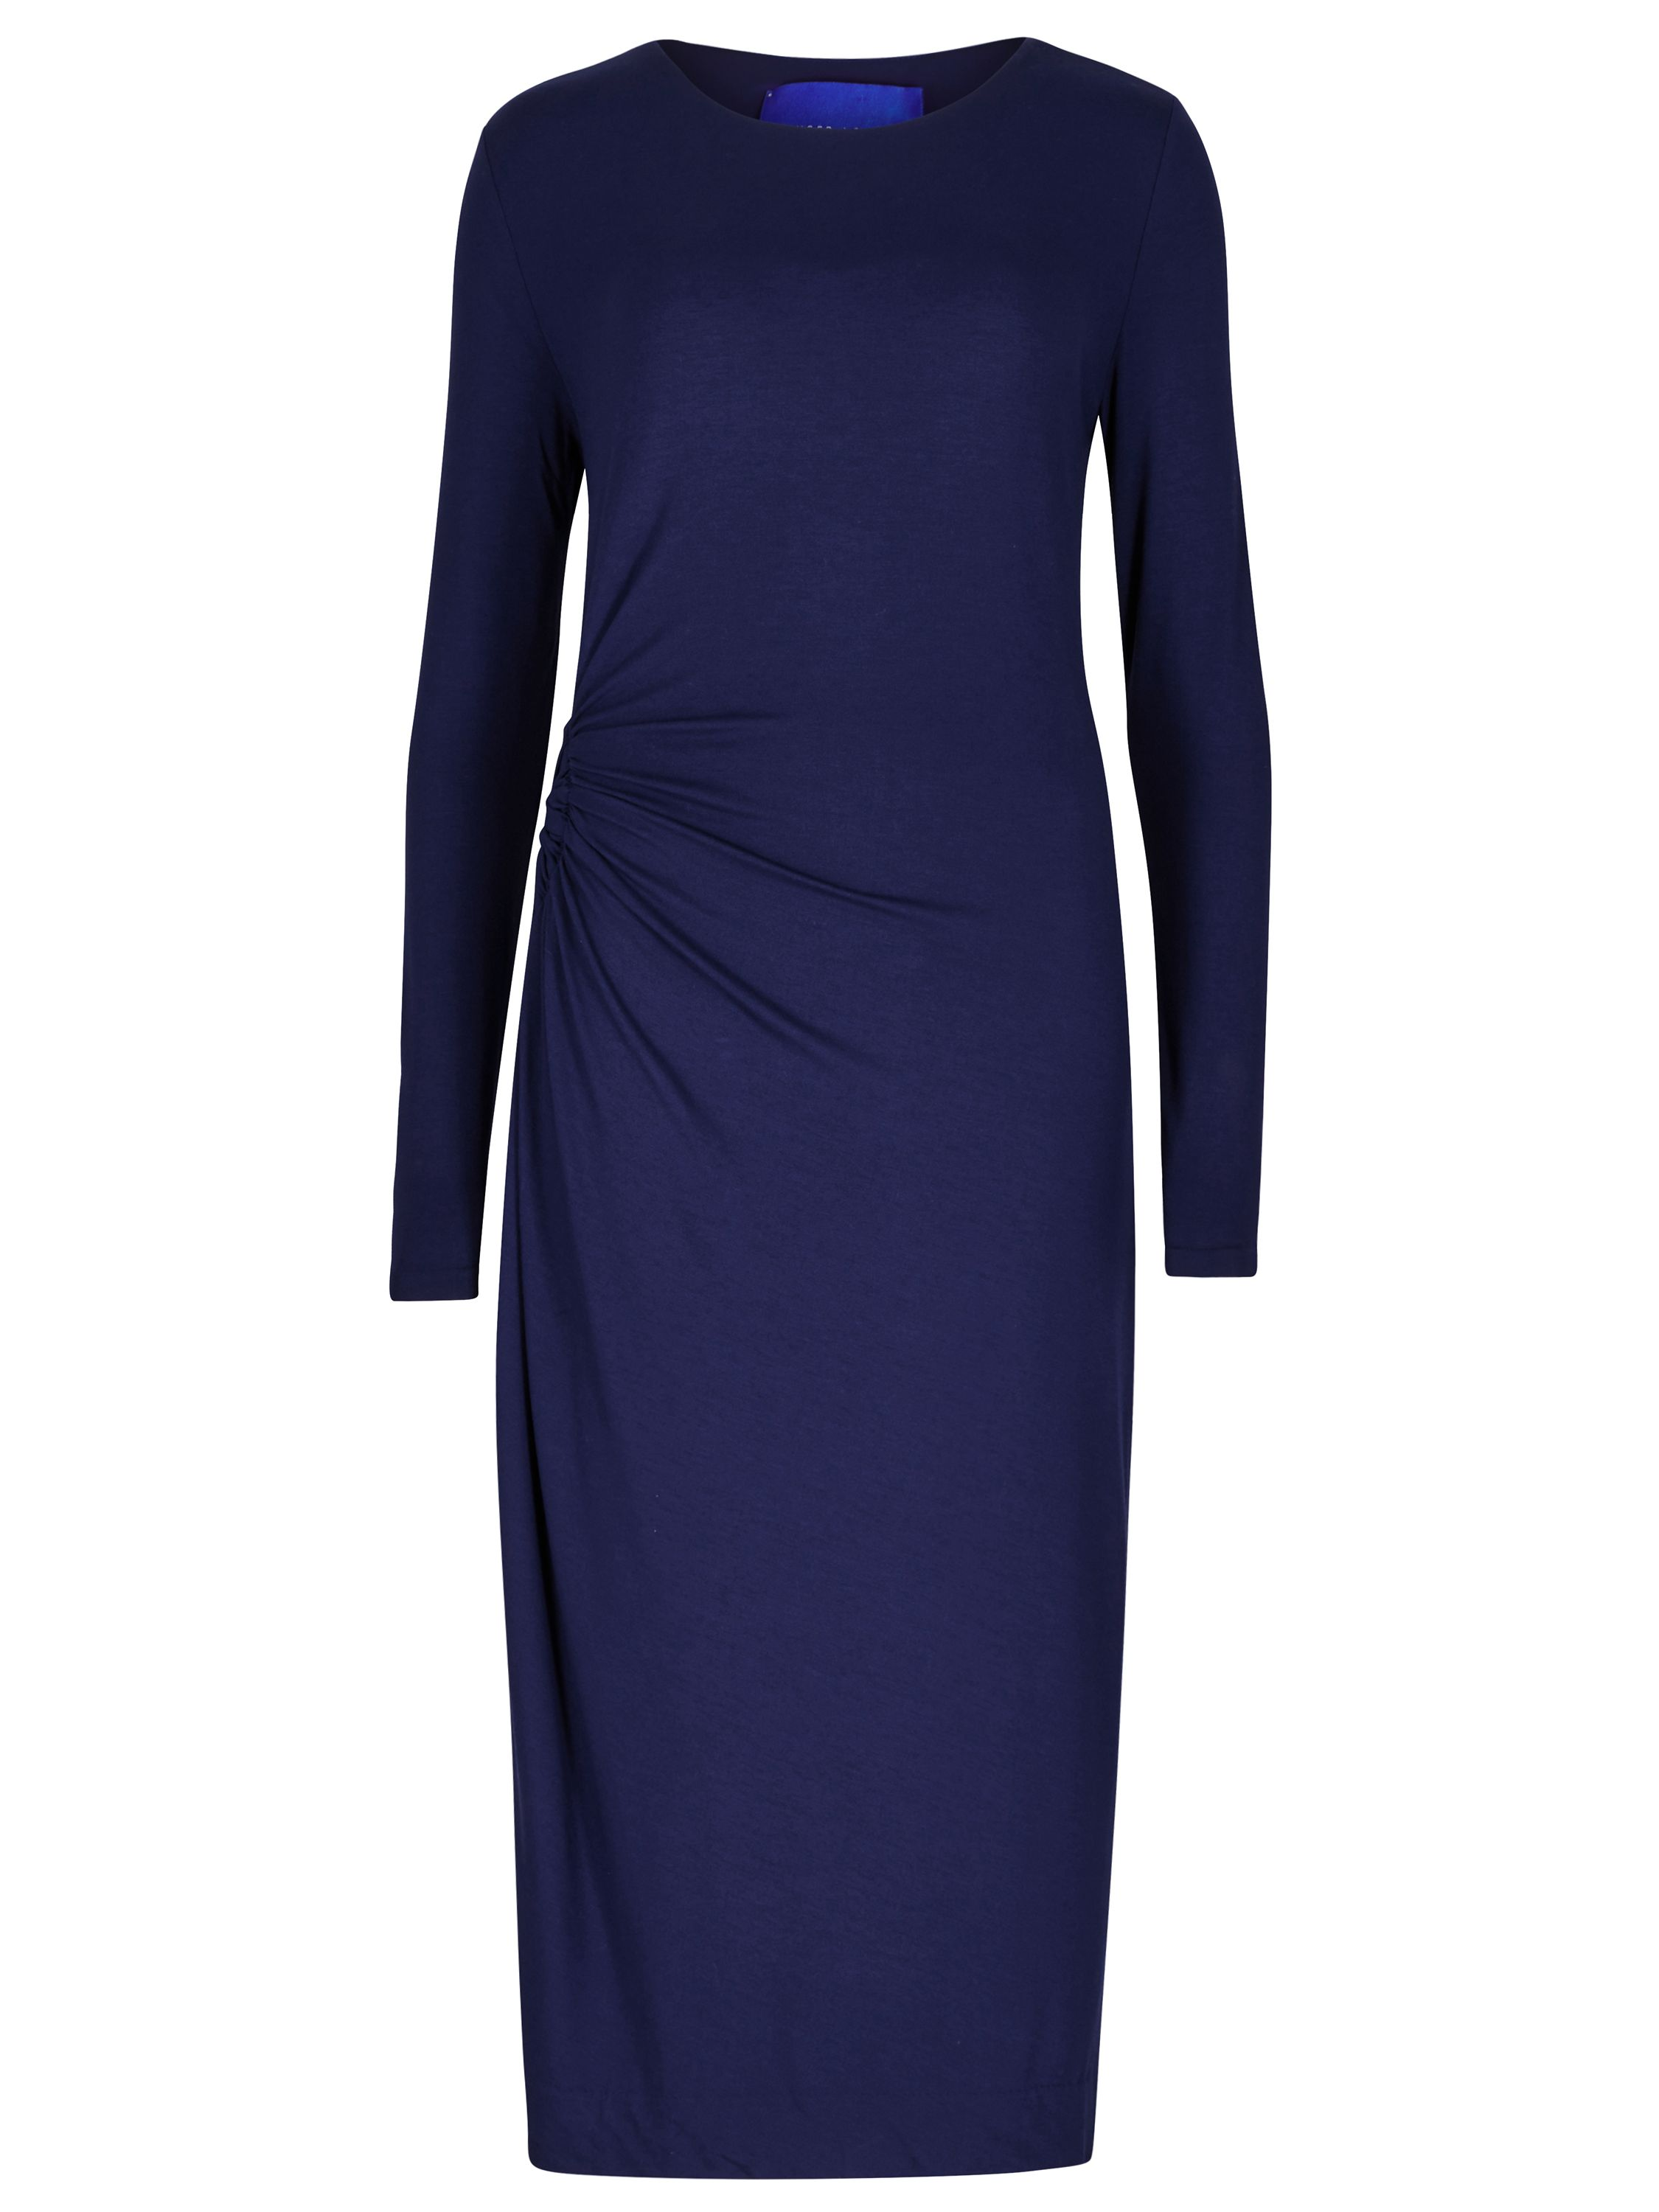 Winser London Rose Jersey Dress, Blue